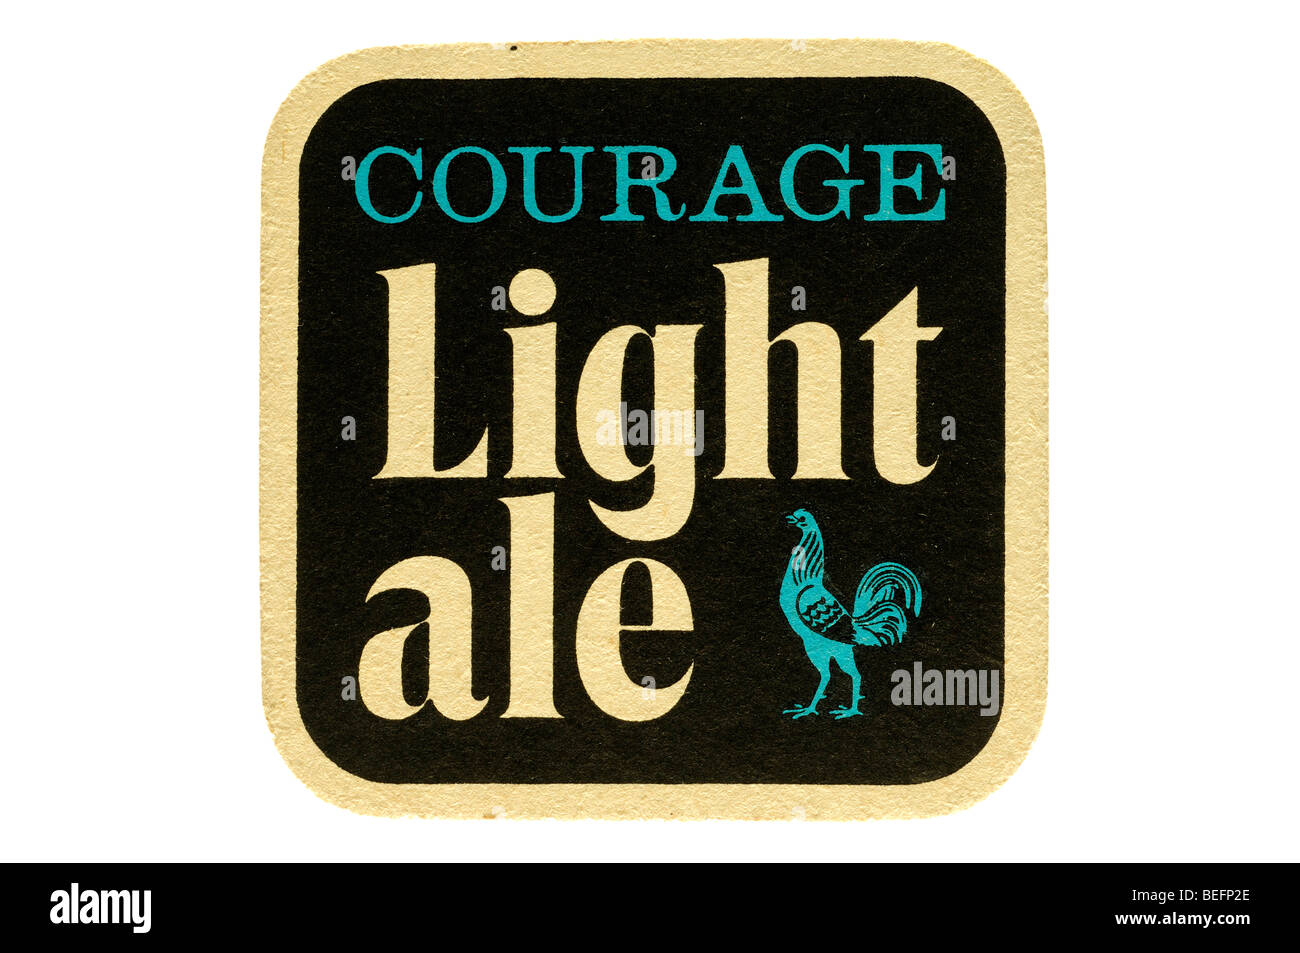 courage light ale - Stock Image